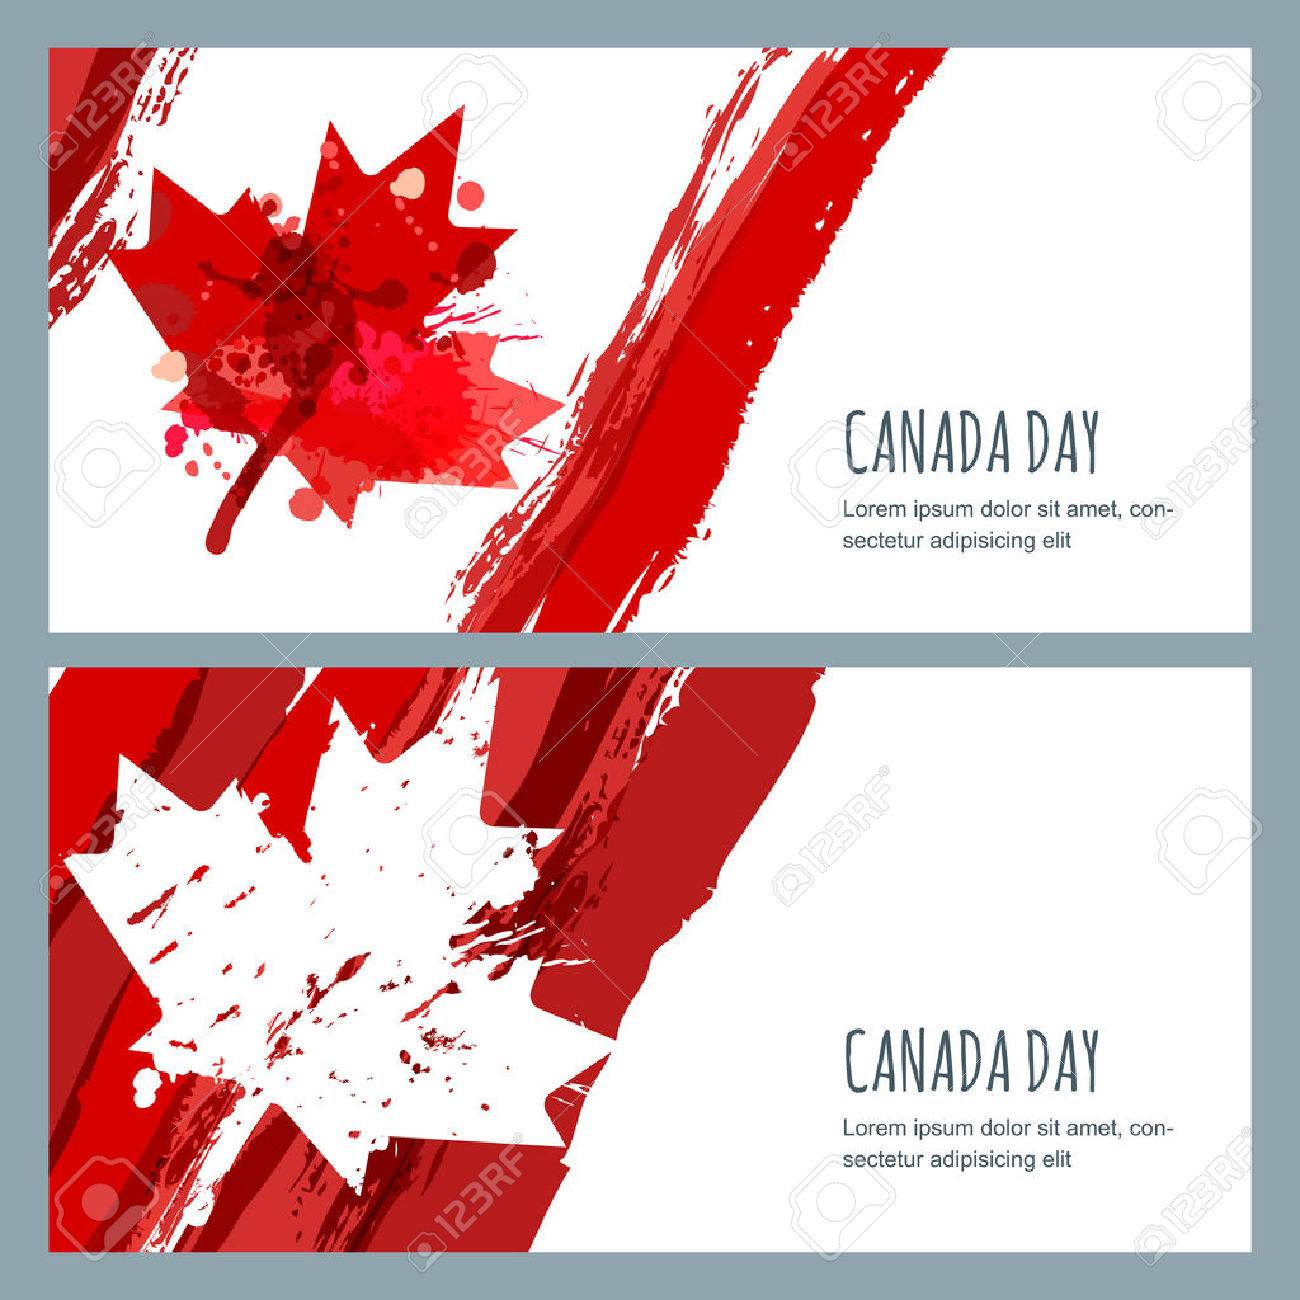 watercolor banners and backgrounds 1st of july happy canada